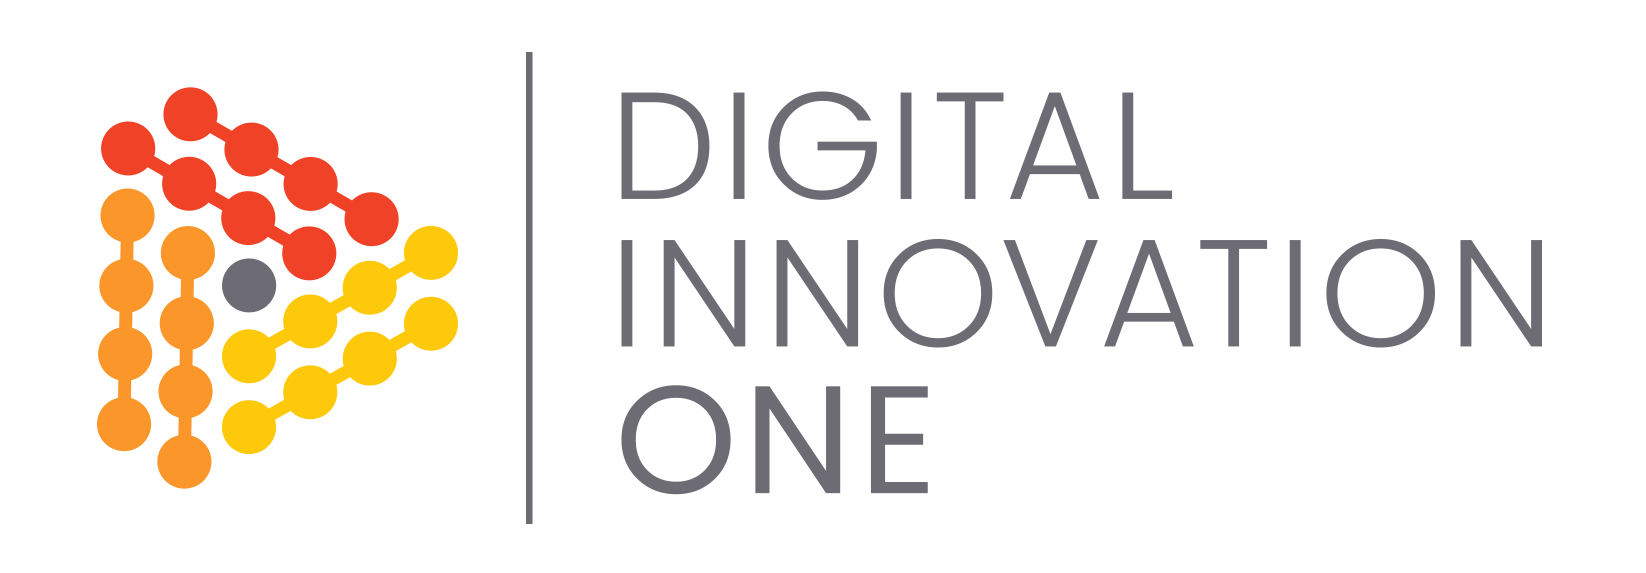 Digital Innovation One | Aceleração Global Dev #2